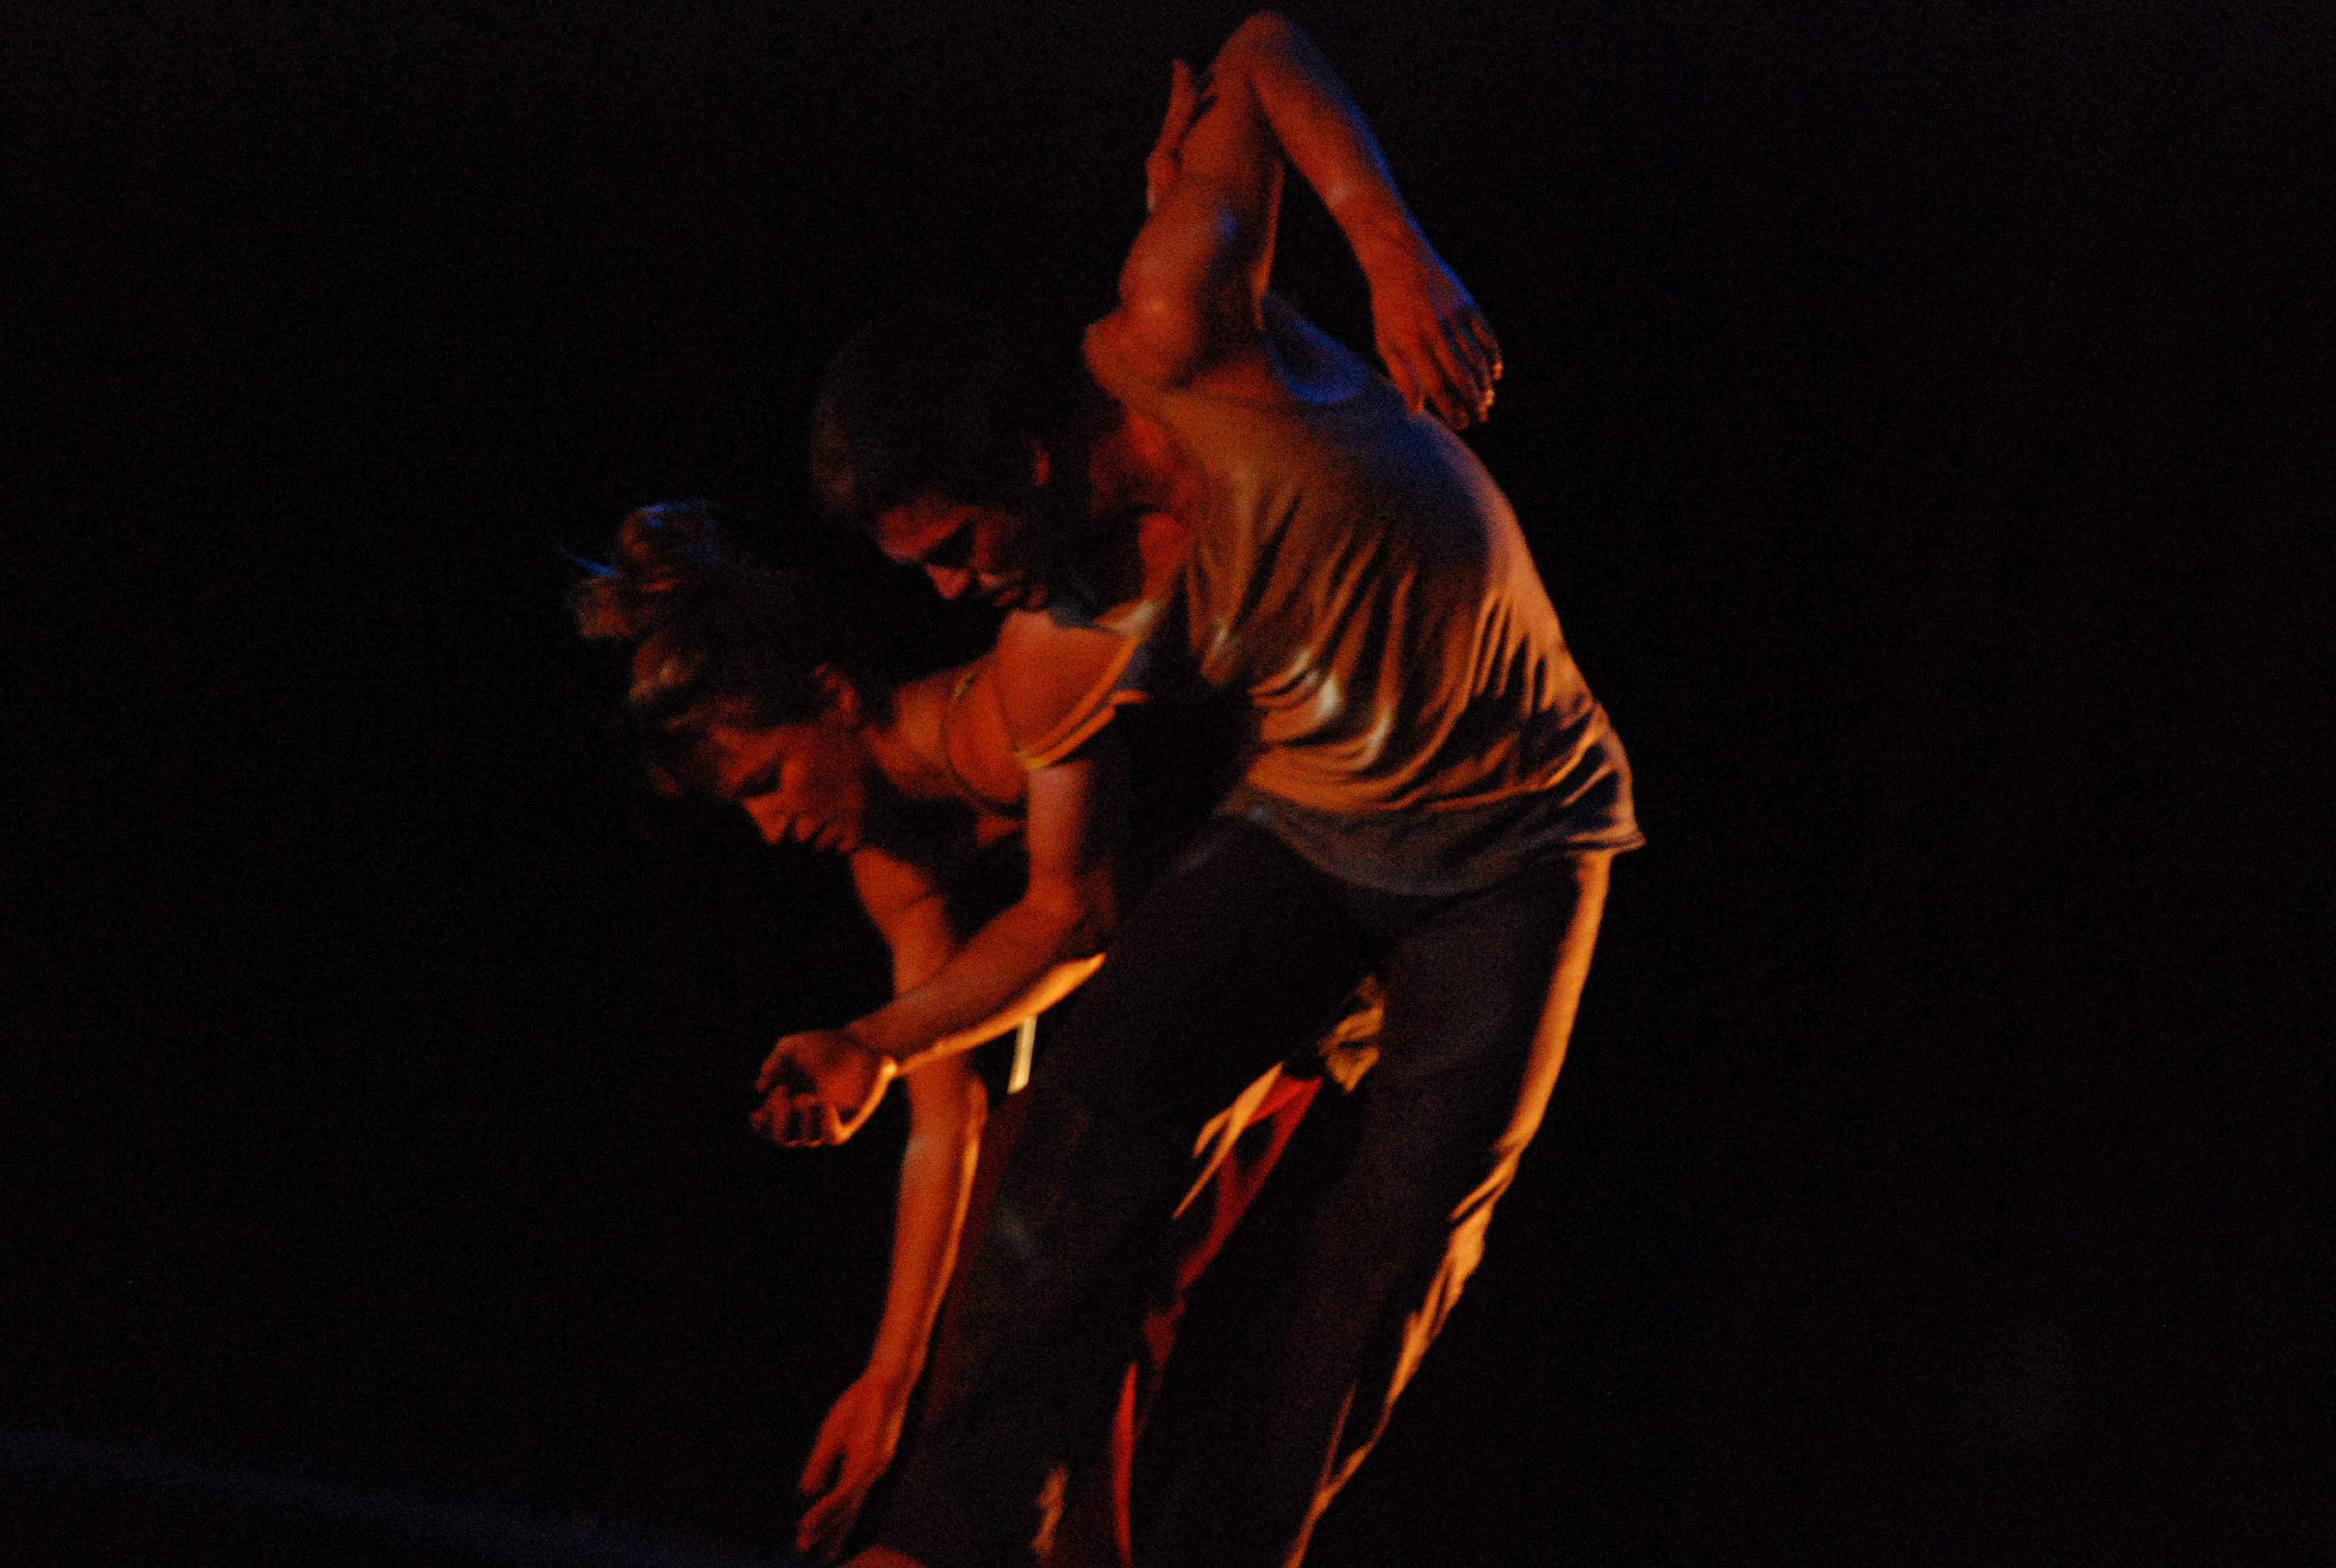 Victoria Hauke in 'Else' with Olaf Reinecke  at Qadir Ali Baig Theatre Festival 2009